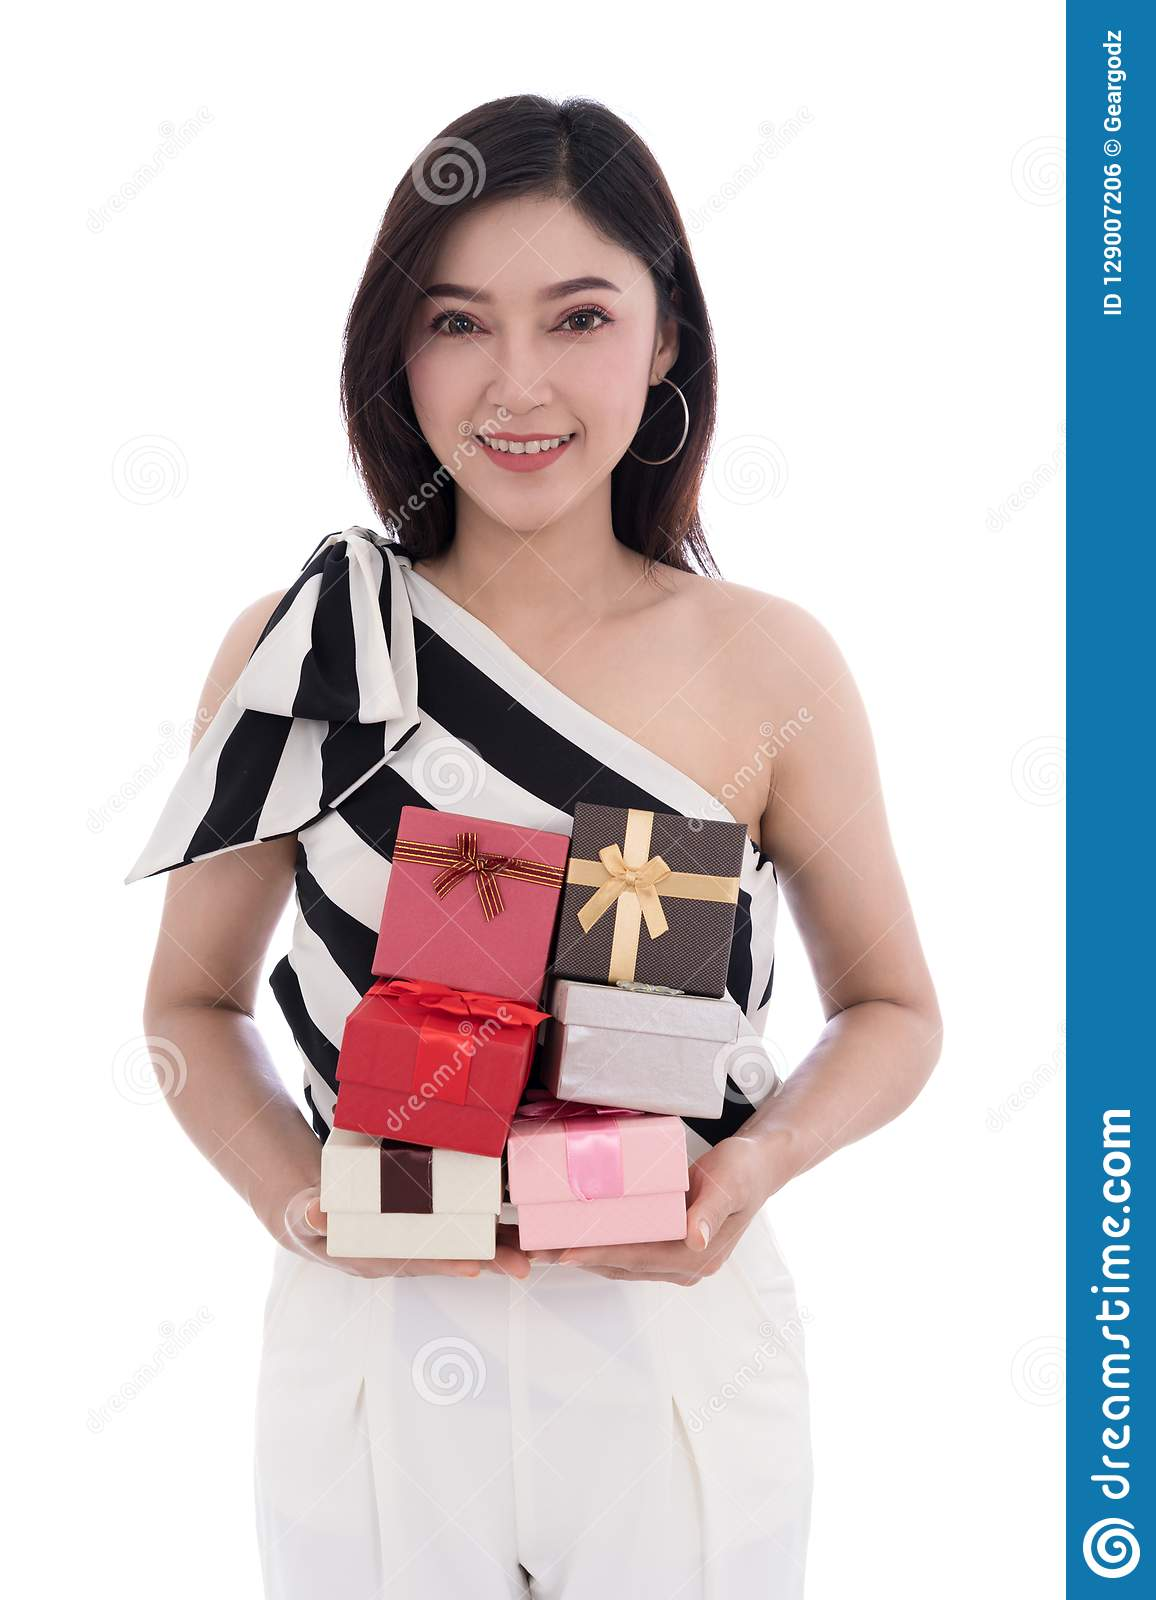 Happy woman with gift box isolated on white background